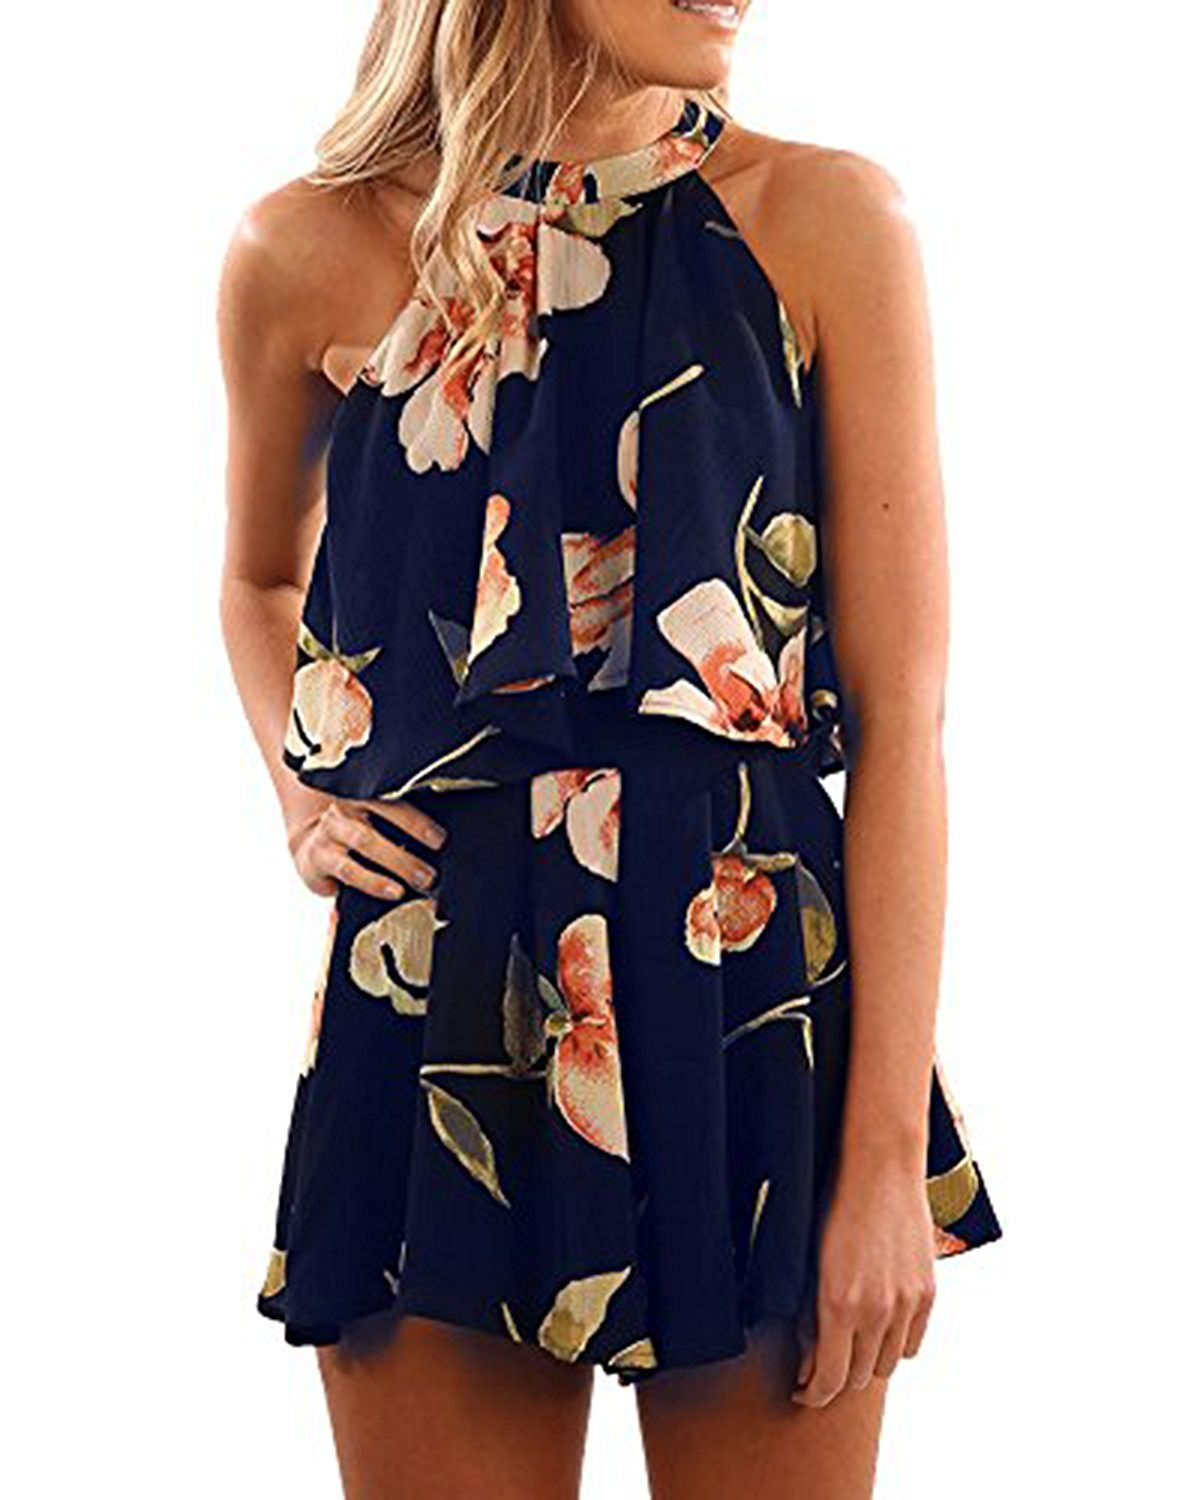 SySea Womens Floral Print Halter Neck Sleeveless Casual Boho Overlay One Piece Rompers Jumpsuits